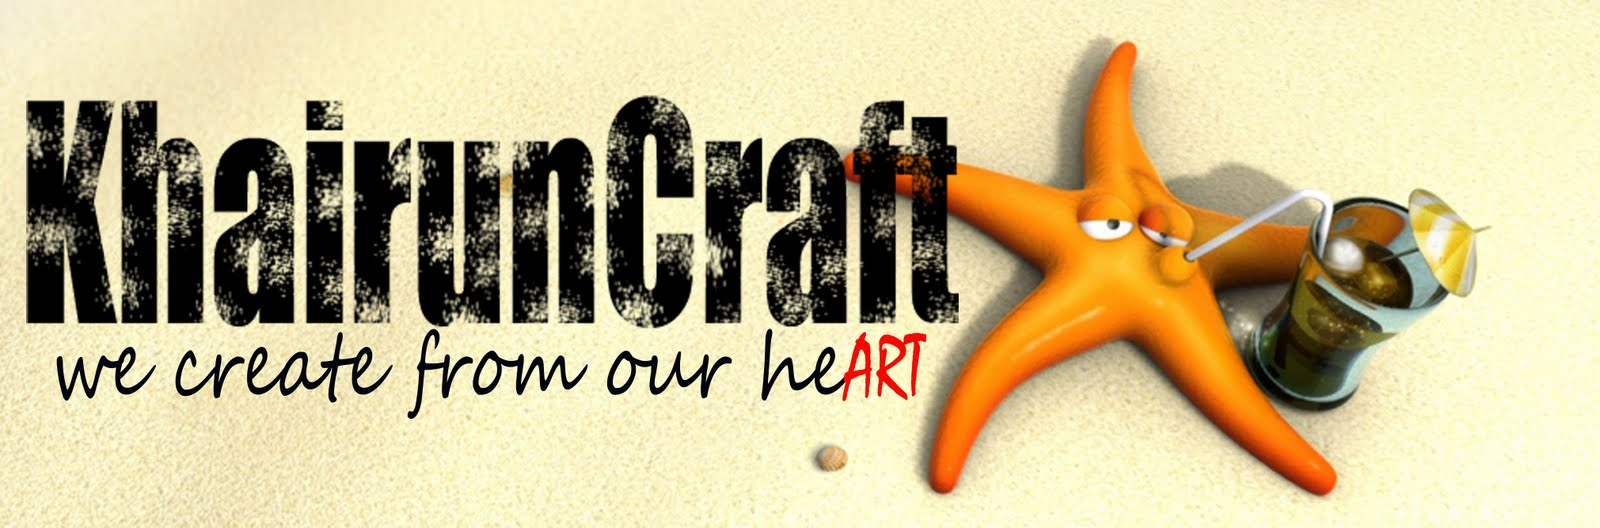 KhairunCraft